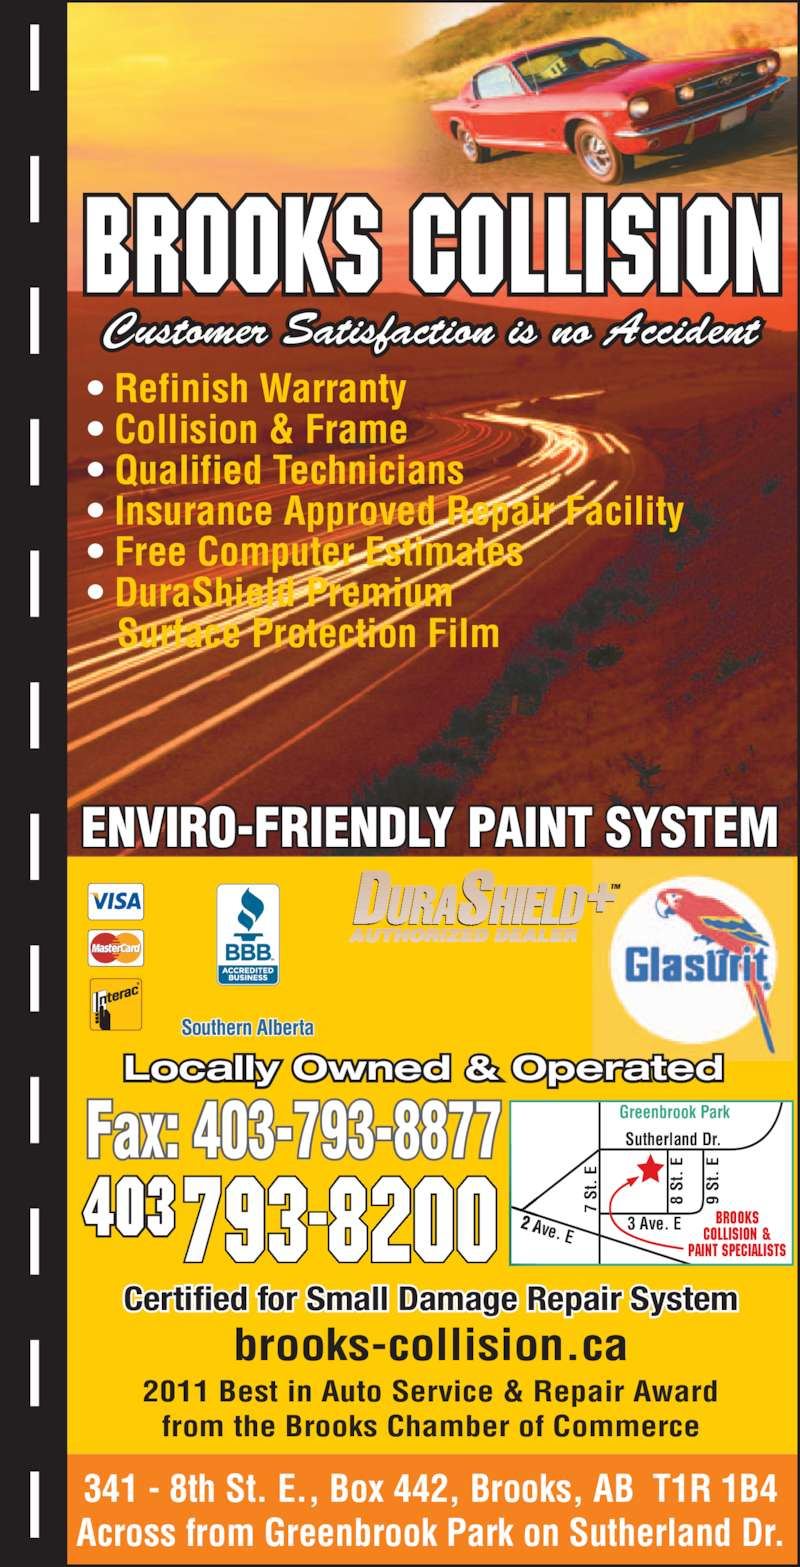 Brooks Collision (403-793-8200) - Display Ad - Customer Satisfaction is no Accident • Refinish Warranty • Collision & Frame • Qualified Technicians • Insurance Approved Repair Facility • Free Computer Estimates • DuraShield Premium    Surface Protection Film  341 - 8th St. E., Box 442, Brooks, AB  T1R 1B4 Across from Greenbrook Park on Sutherland Dr. ENVIRO-FRIENDLY PAINT SYSTEM Certified for Small Damage Repair System Locally Owned & Operated Greenbrook Park Sutherland Dr. 9  St .  8  St .  3 Ave. E 7  St .  2 Ave. E Brooks Collision & Paint Specialists Fax: 403-793-8877 403 2011 Best in Auto Service & Repair Award from the Brooks Chamber of Commerce brooks-collision.ca